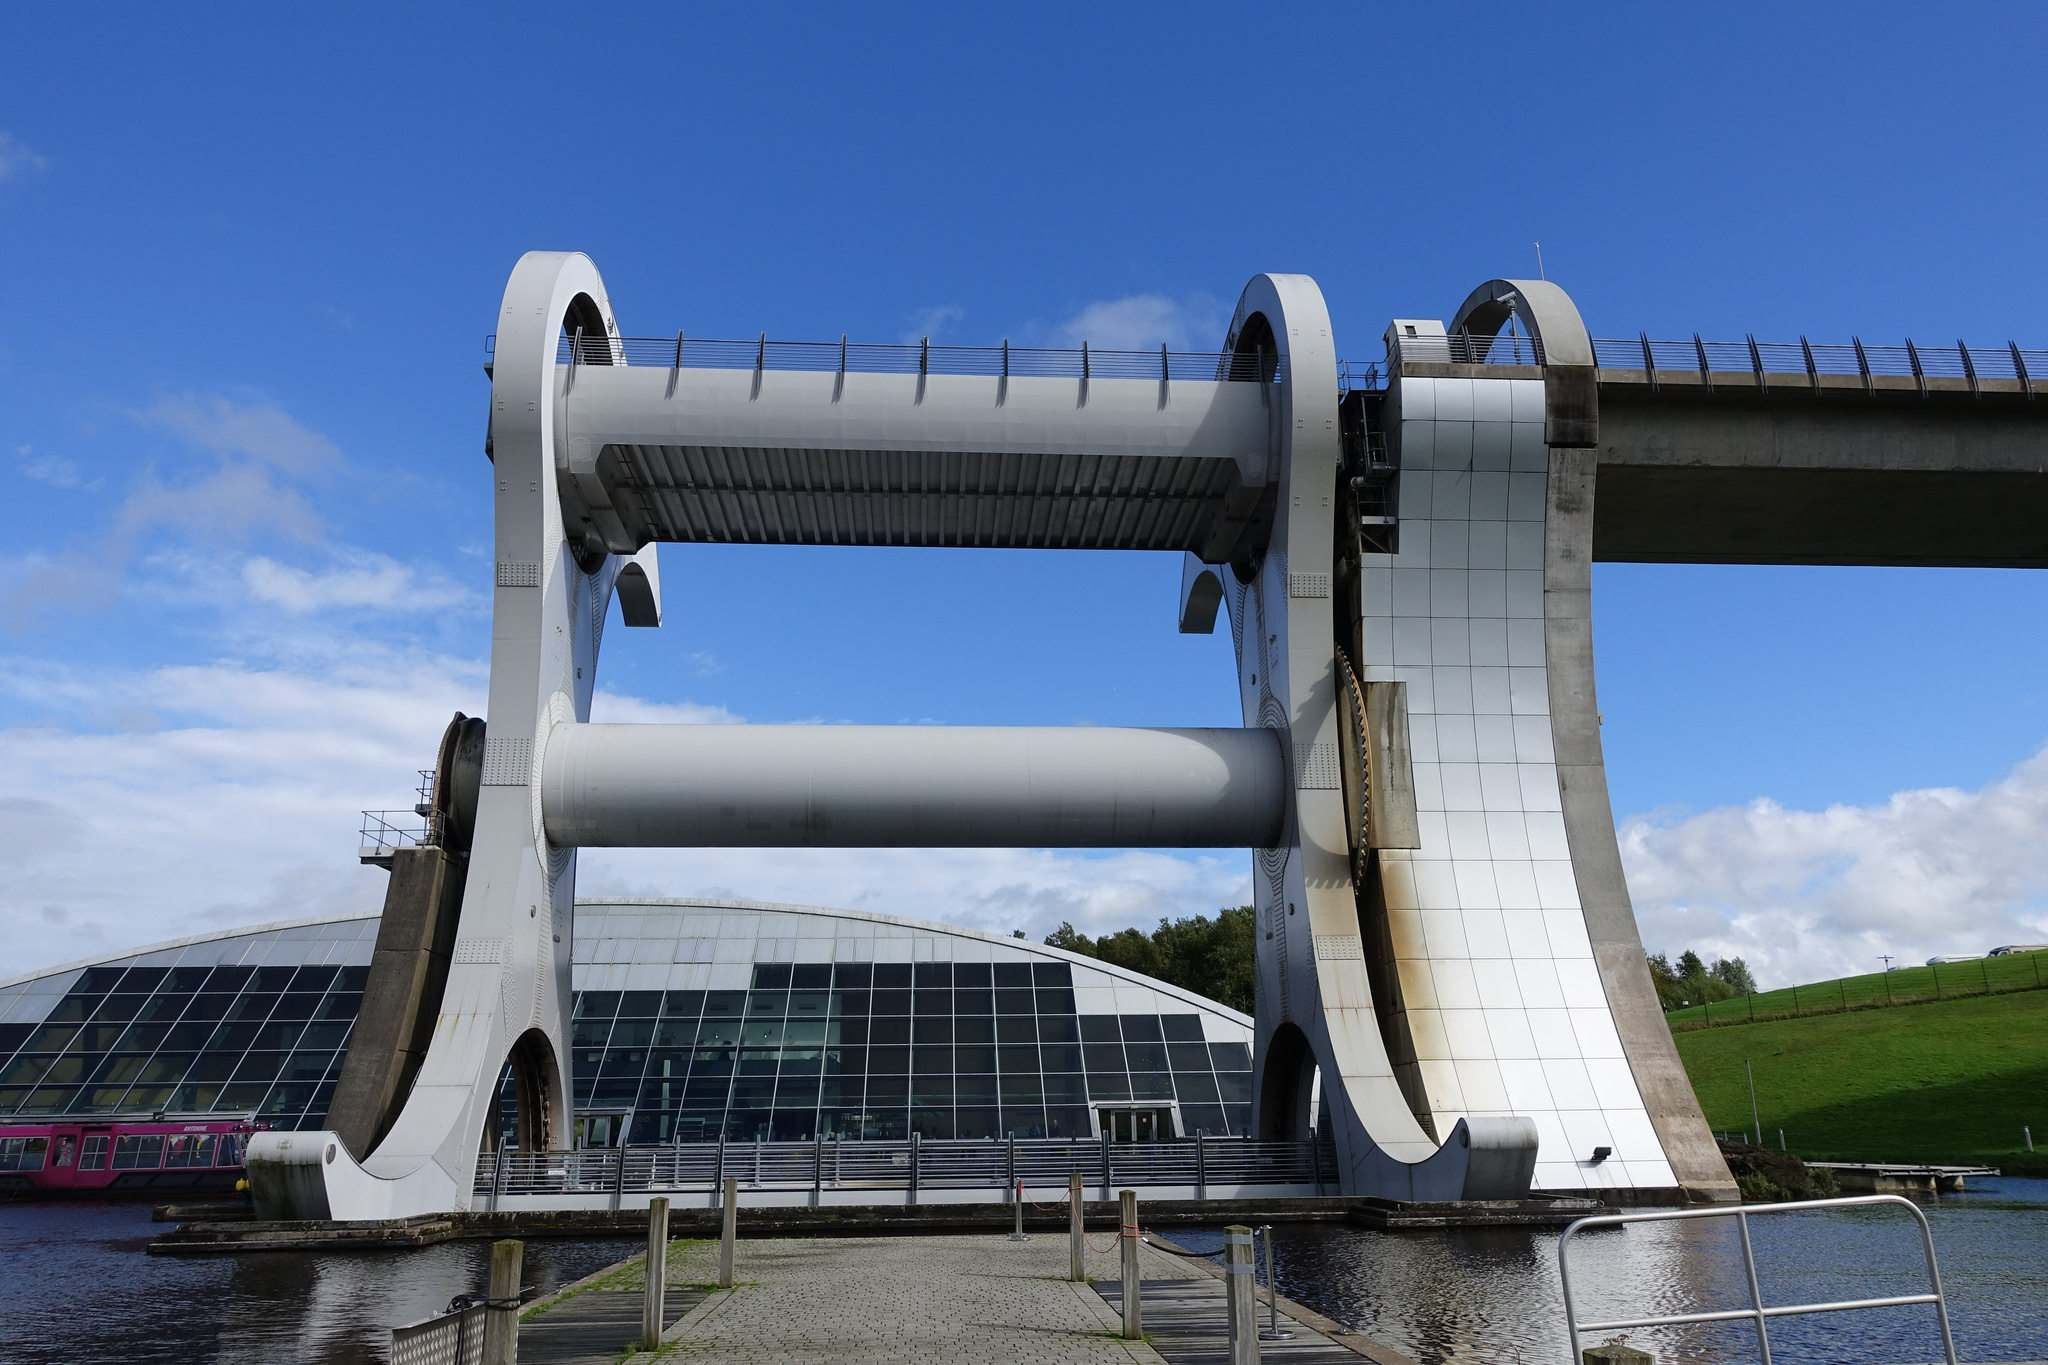 falkirk wheel1 The Falkirk Wheel   Rotating Boat Lift in Scotland